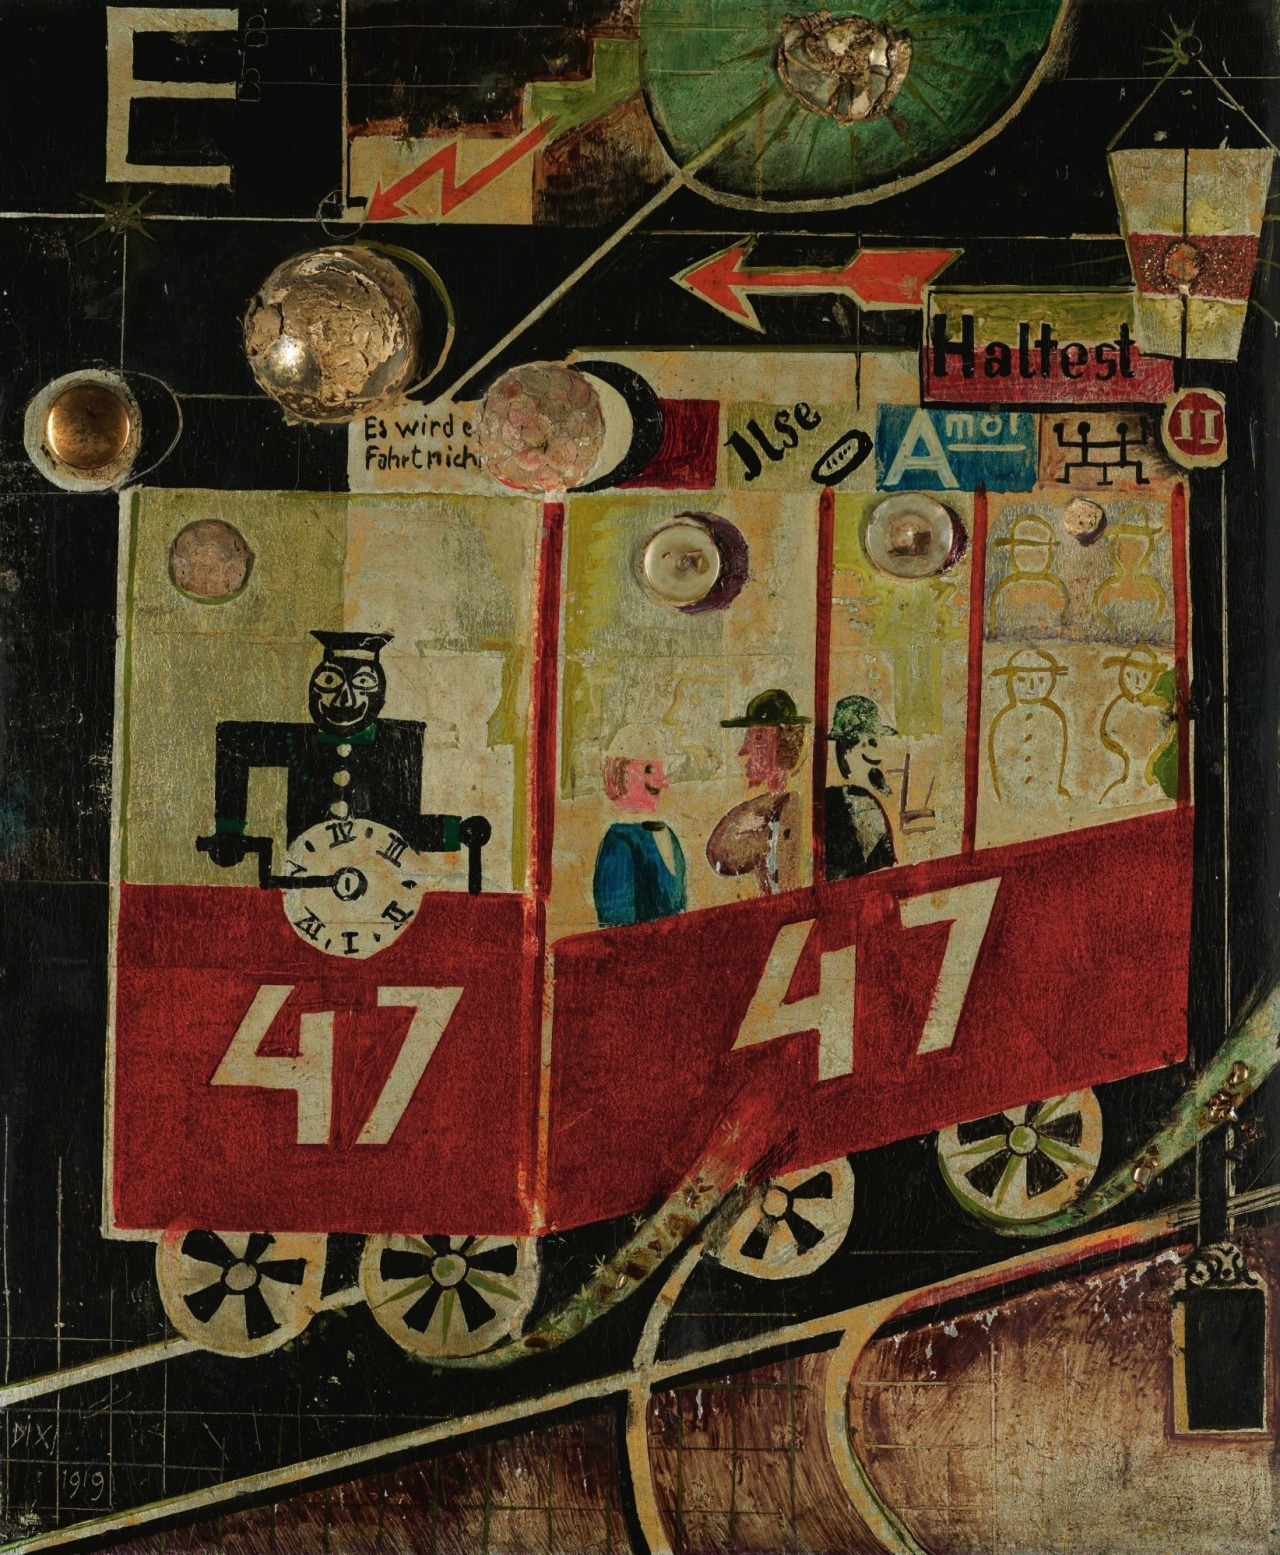 Otto Dix (German, 1891-1969), Die Elektrische [The Electric Tram], 1919. Oil and assemblage on panel, 46 x 37 cm.